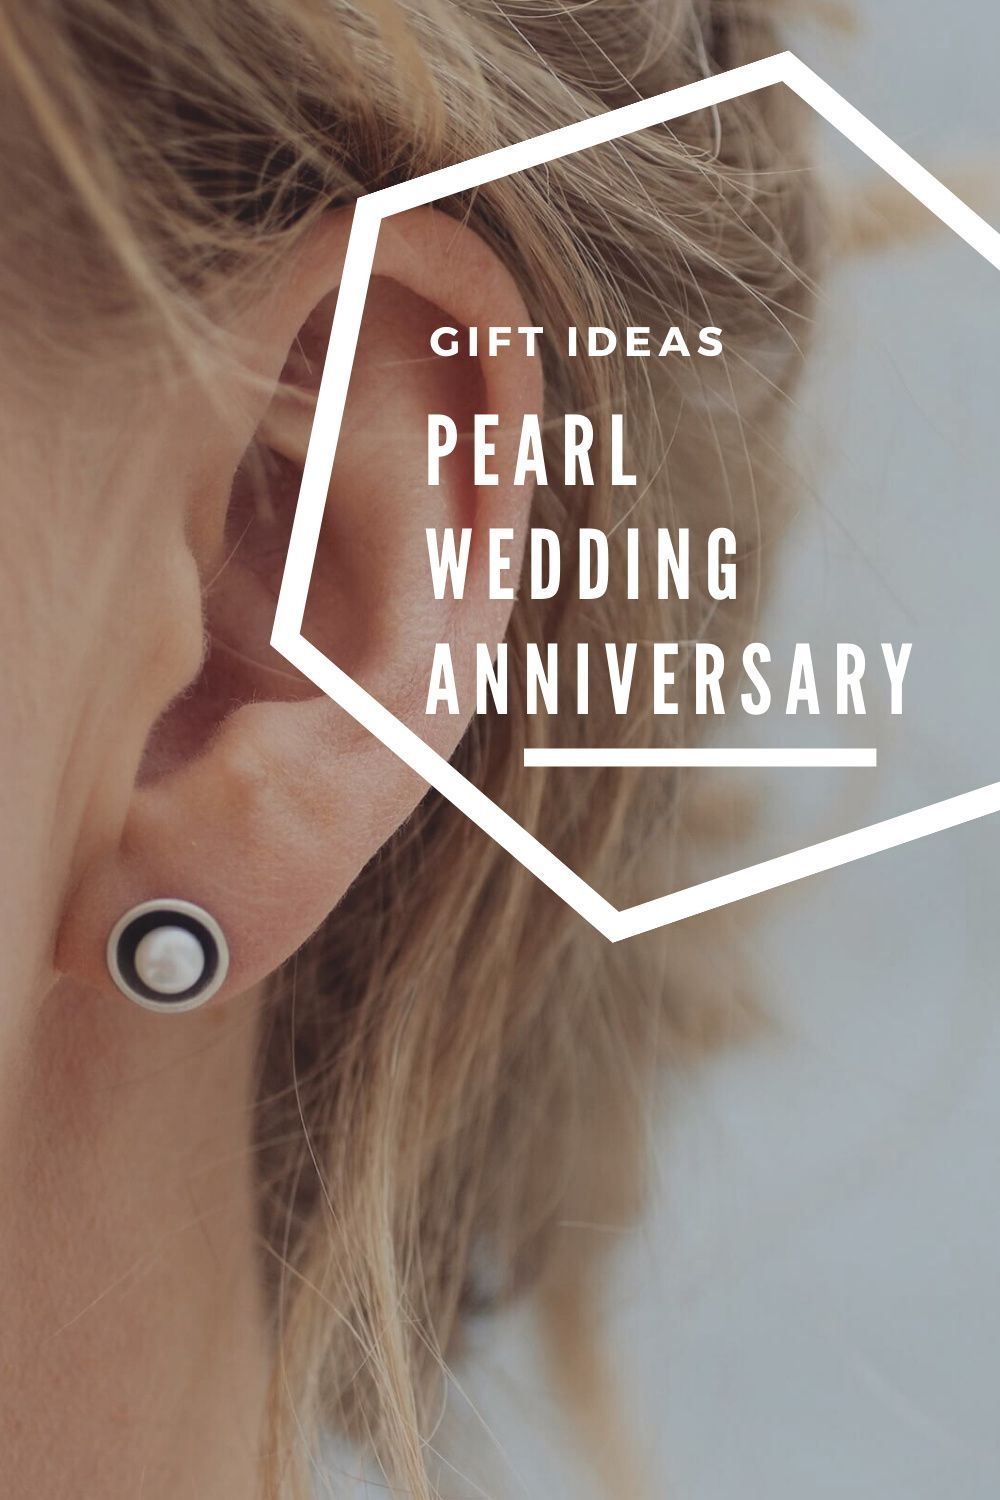 Gift ideas for Pearl Wedding Anniversary in 2020 30th